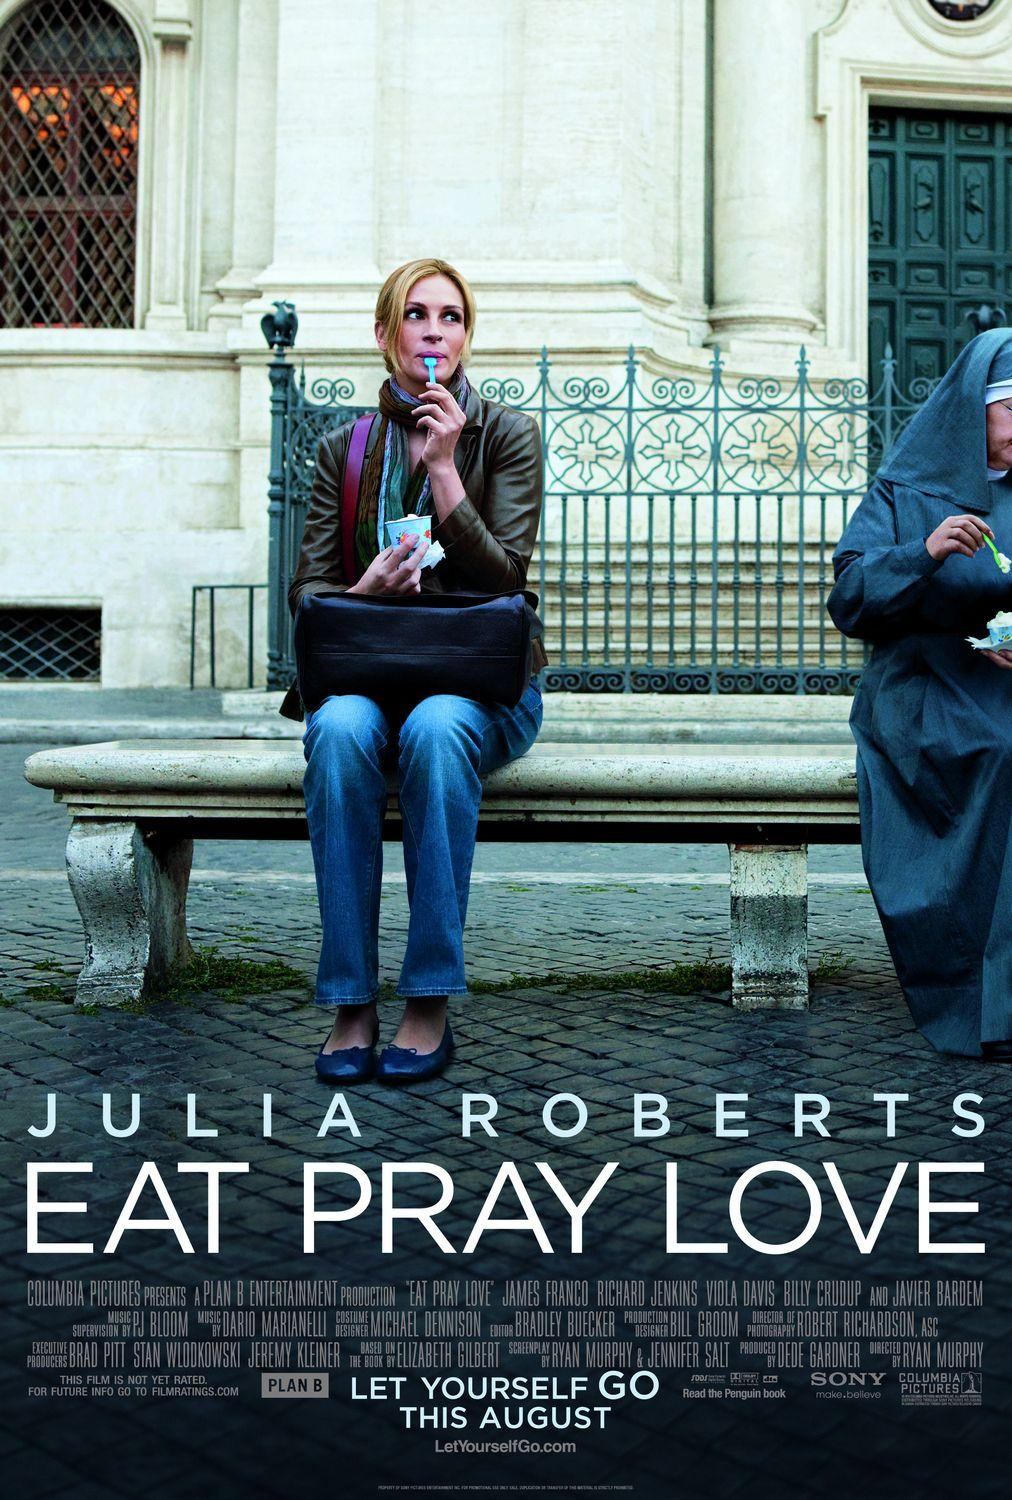 [portalspiritual.com] - Eat Pray Love (2010)